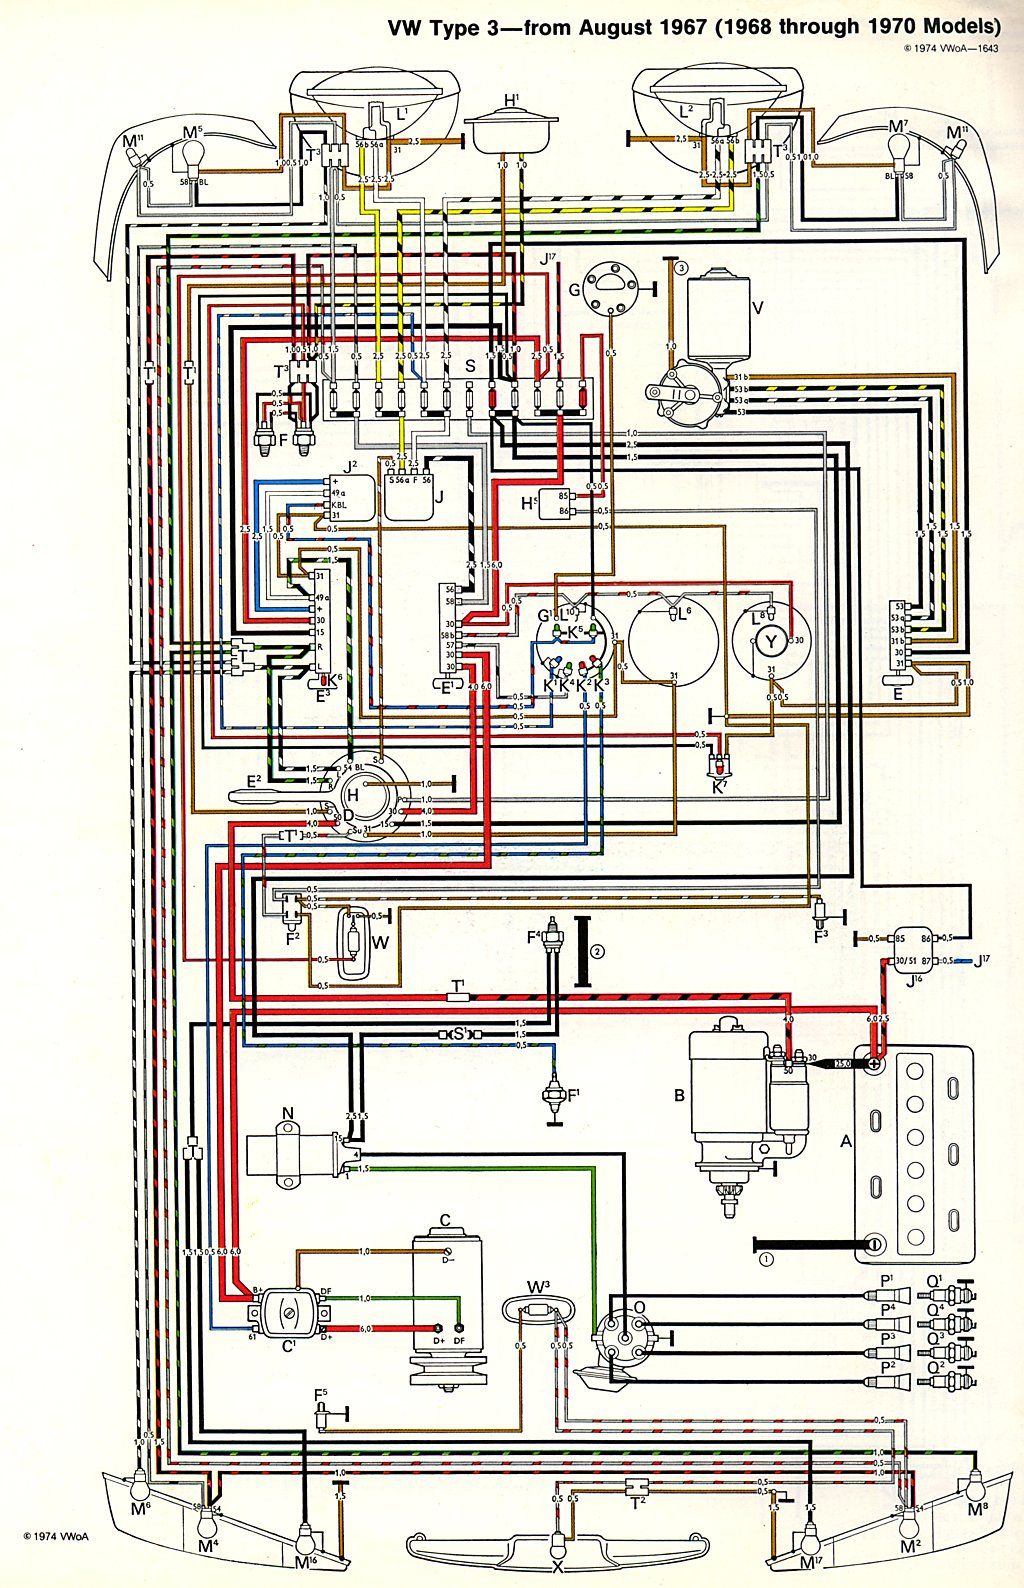 vw bus fuse box diagram wiring diagrams 1970 VW Beetle Antenna 1968 vw beetle wiring diagram 14 yuk4 allmylovedesign de \\u2022